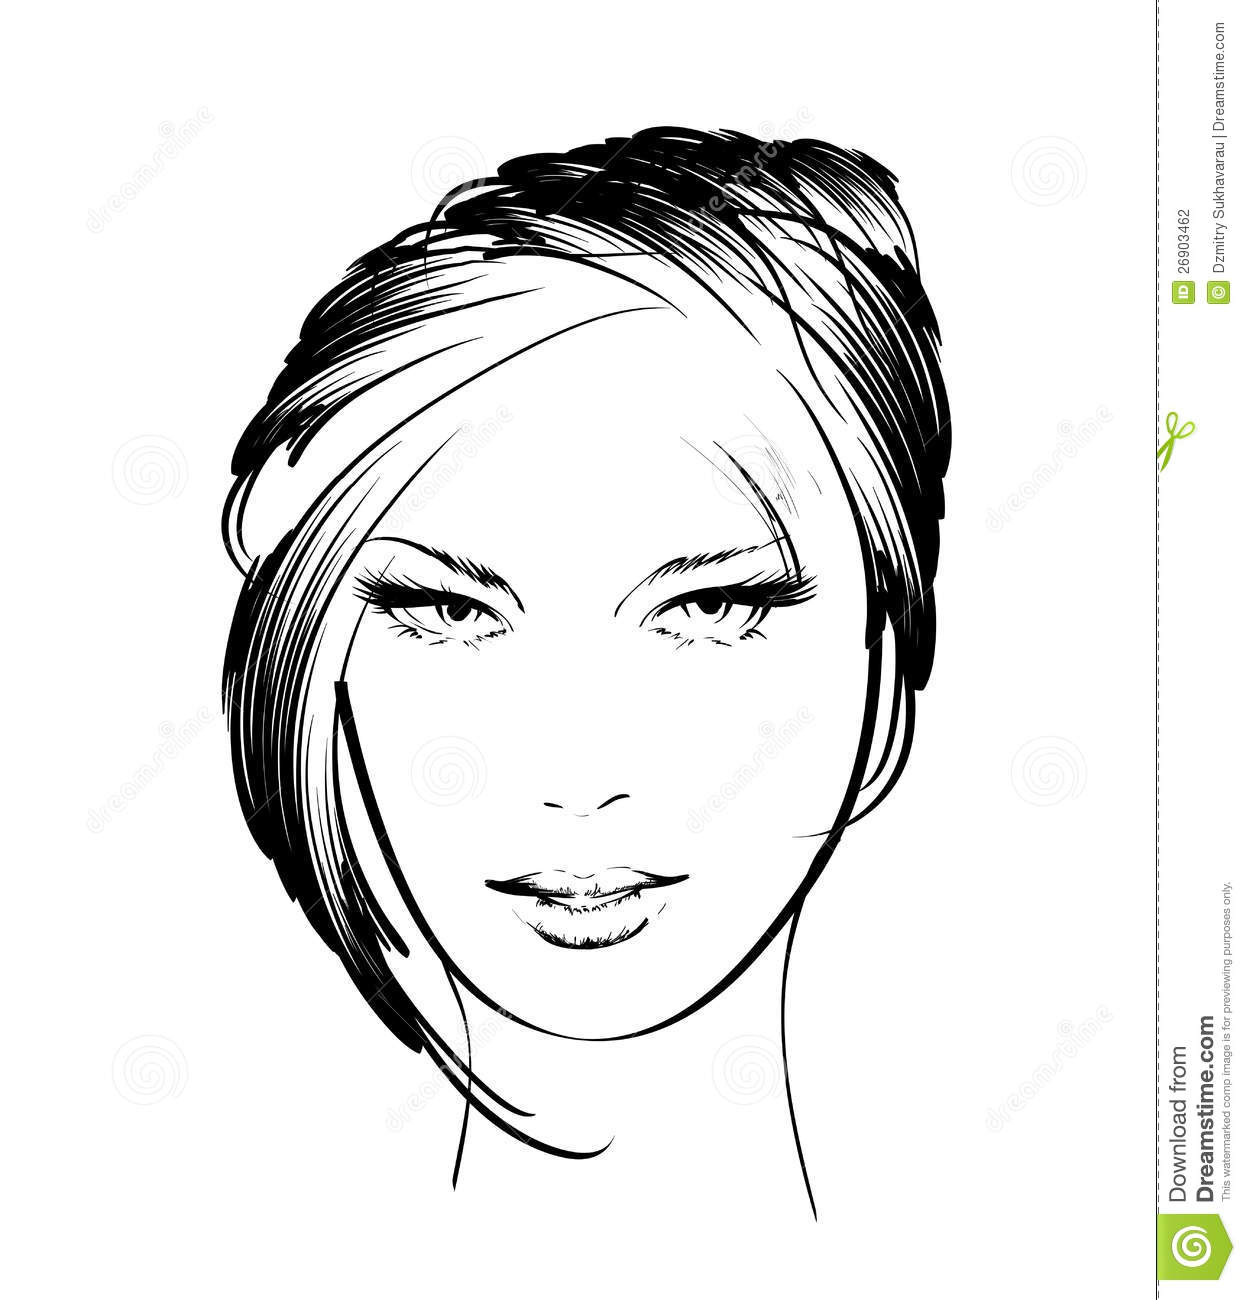 Sketch beauty girl face on a white background